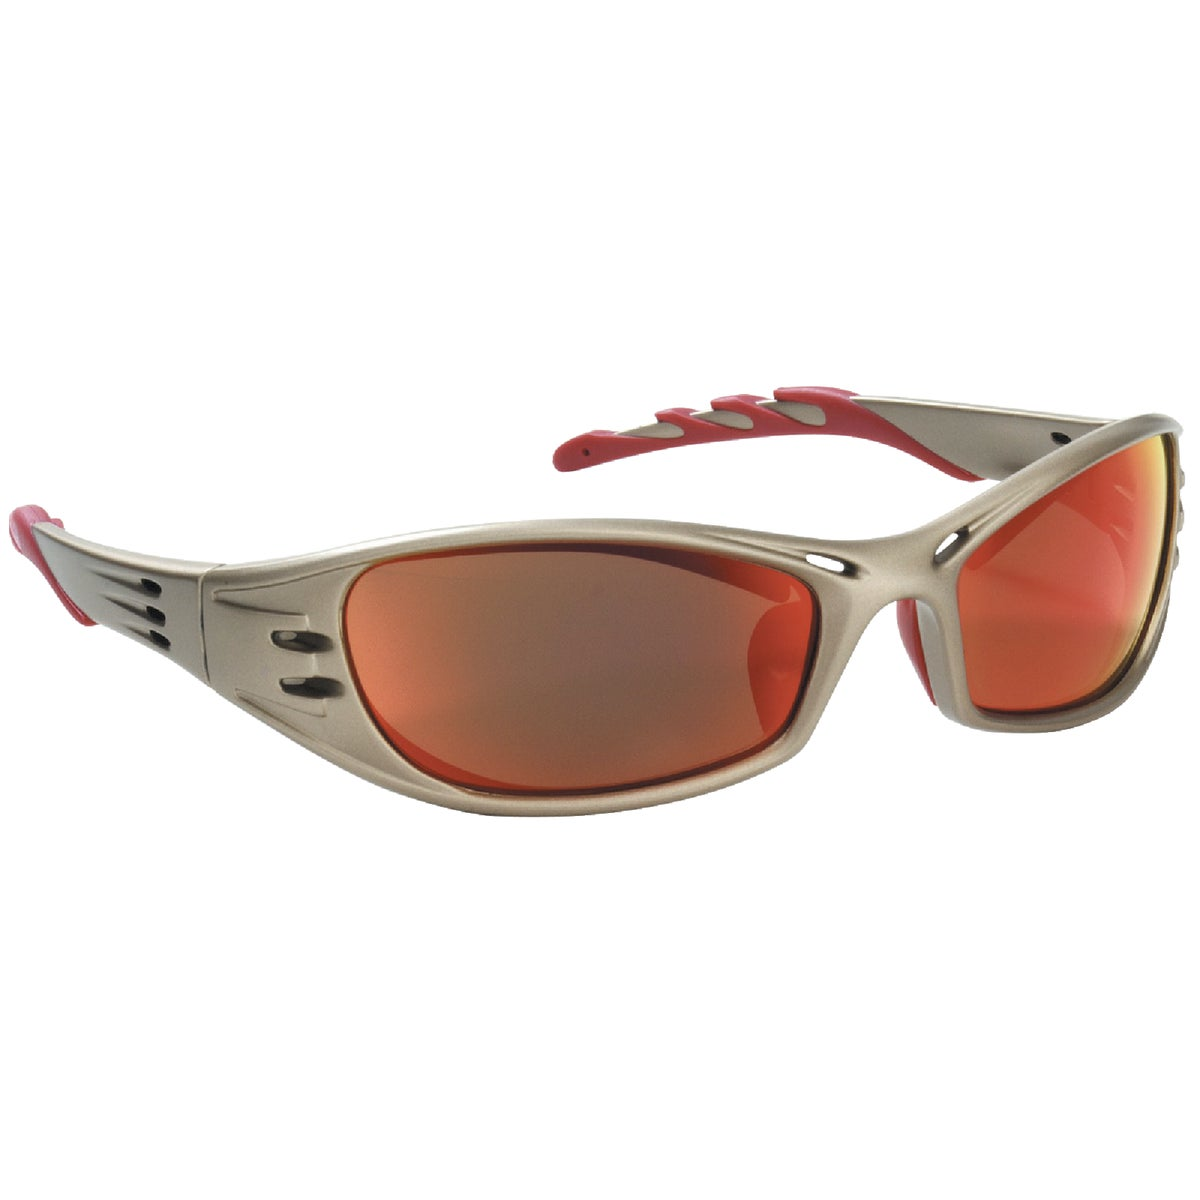 3M RED SAFETY SUNGLASSES 90987-80025